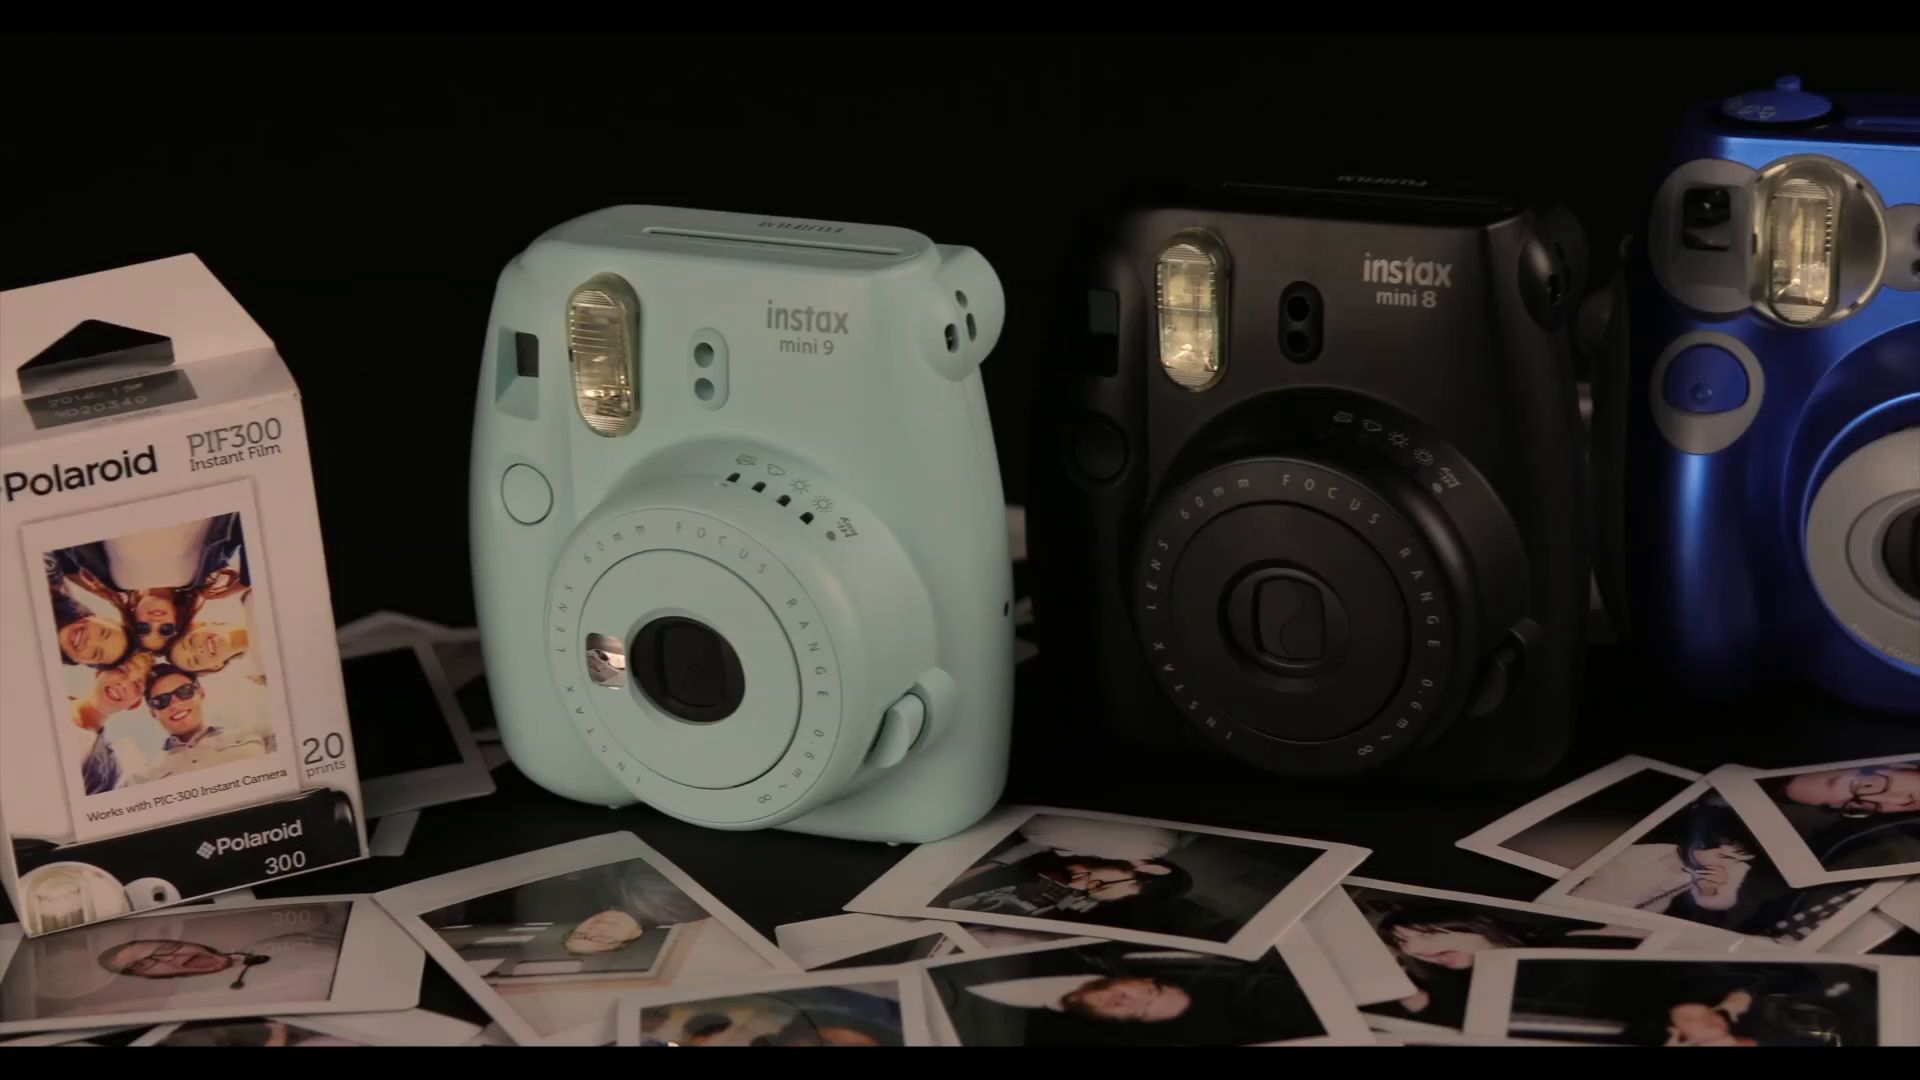 Other Film Cameras - Polaroid PIF300 Instant Film